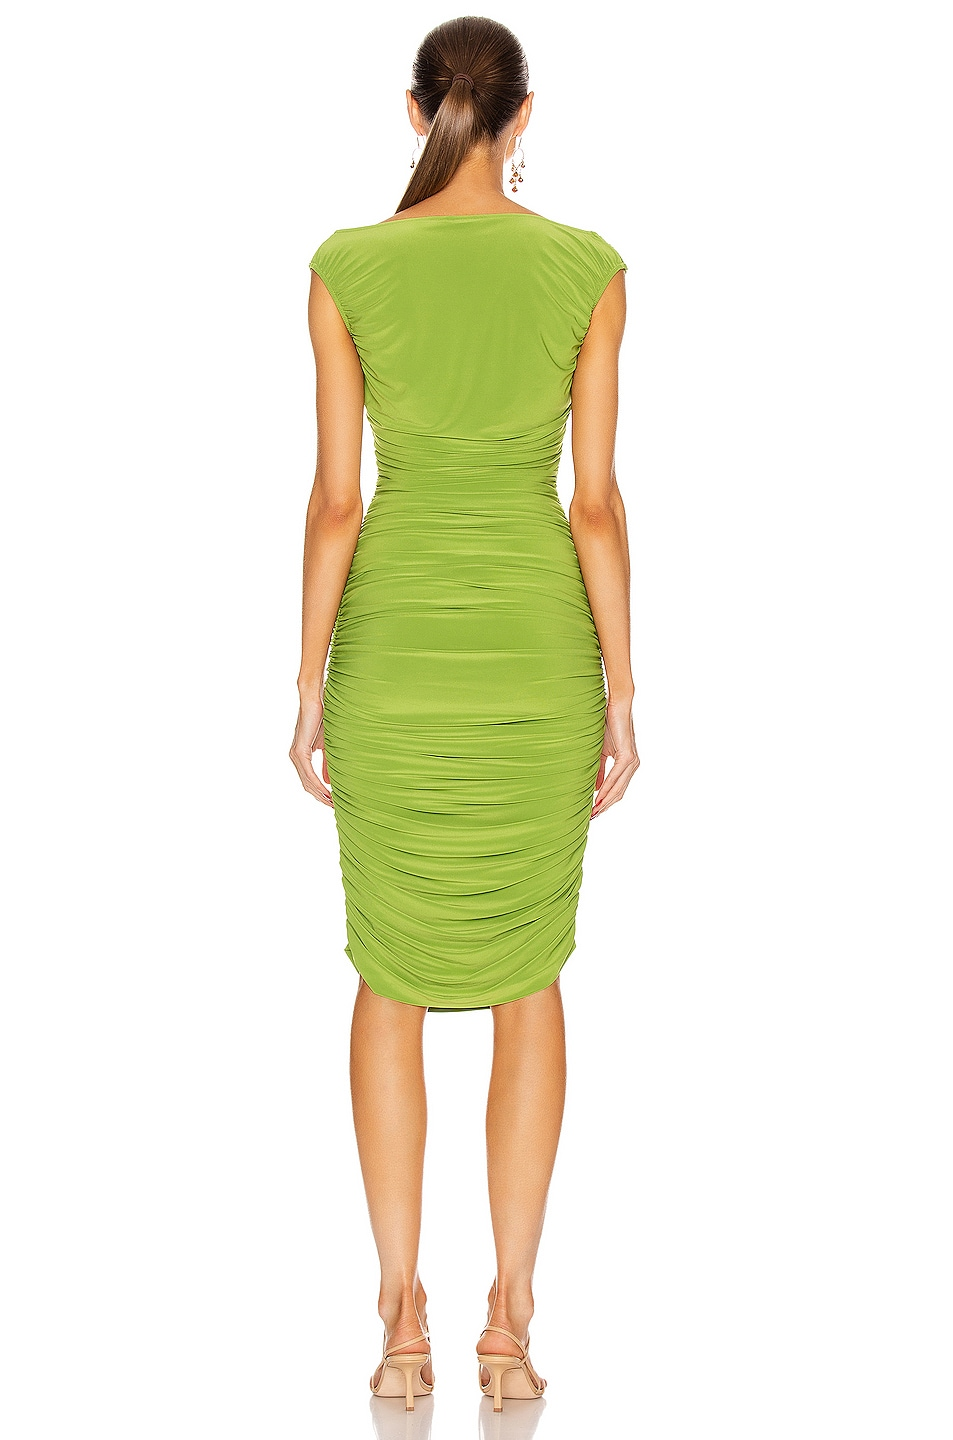 Image 3 of Norma Kamali for FWRD Tara Dress in Matcha Green